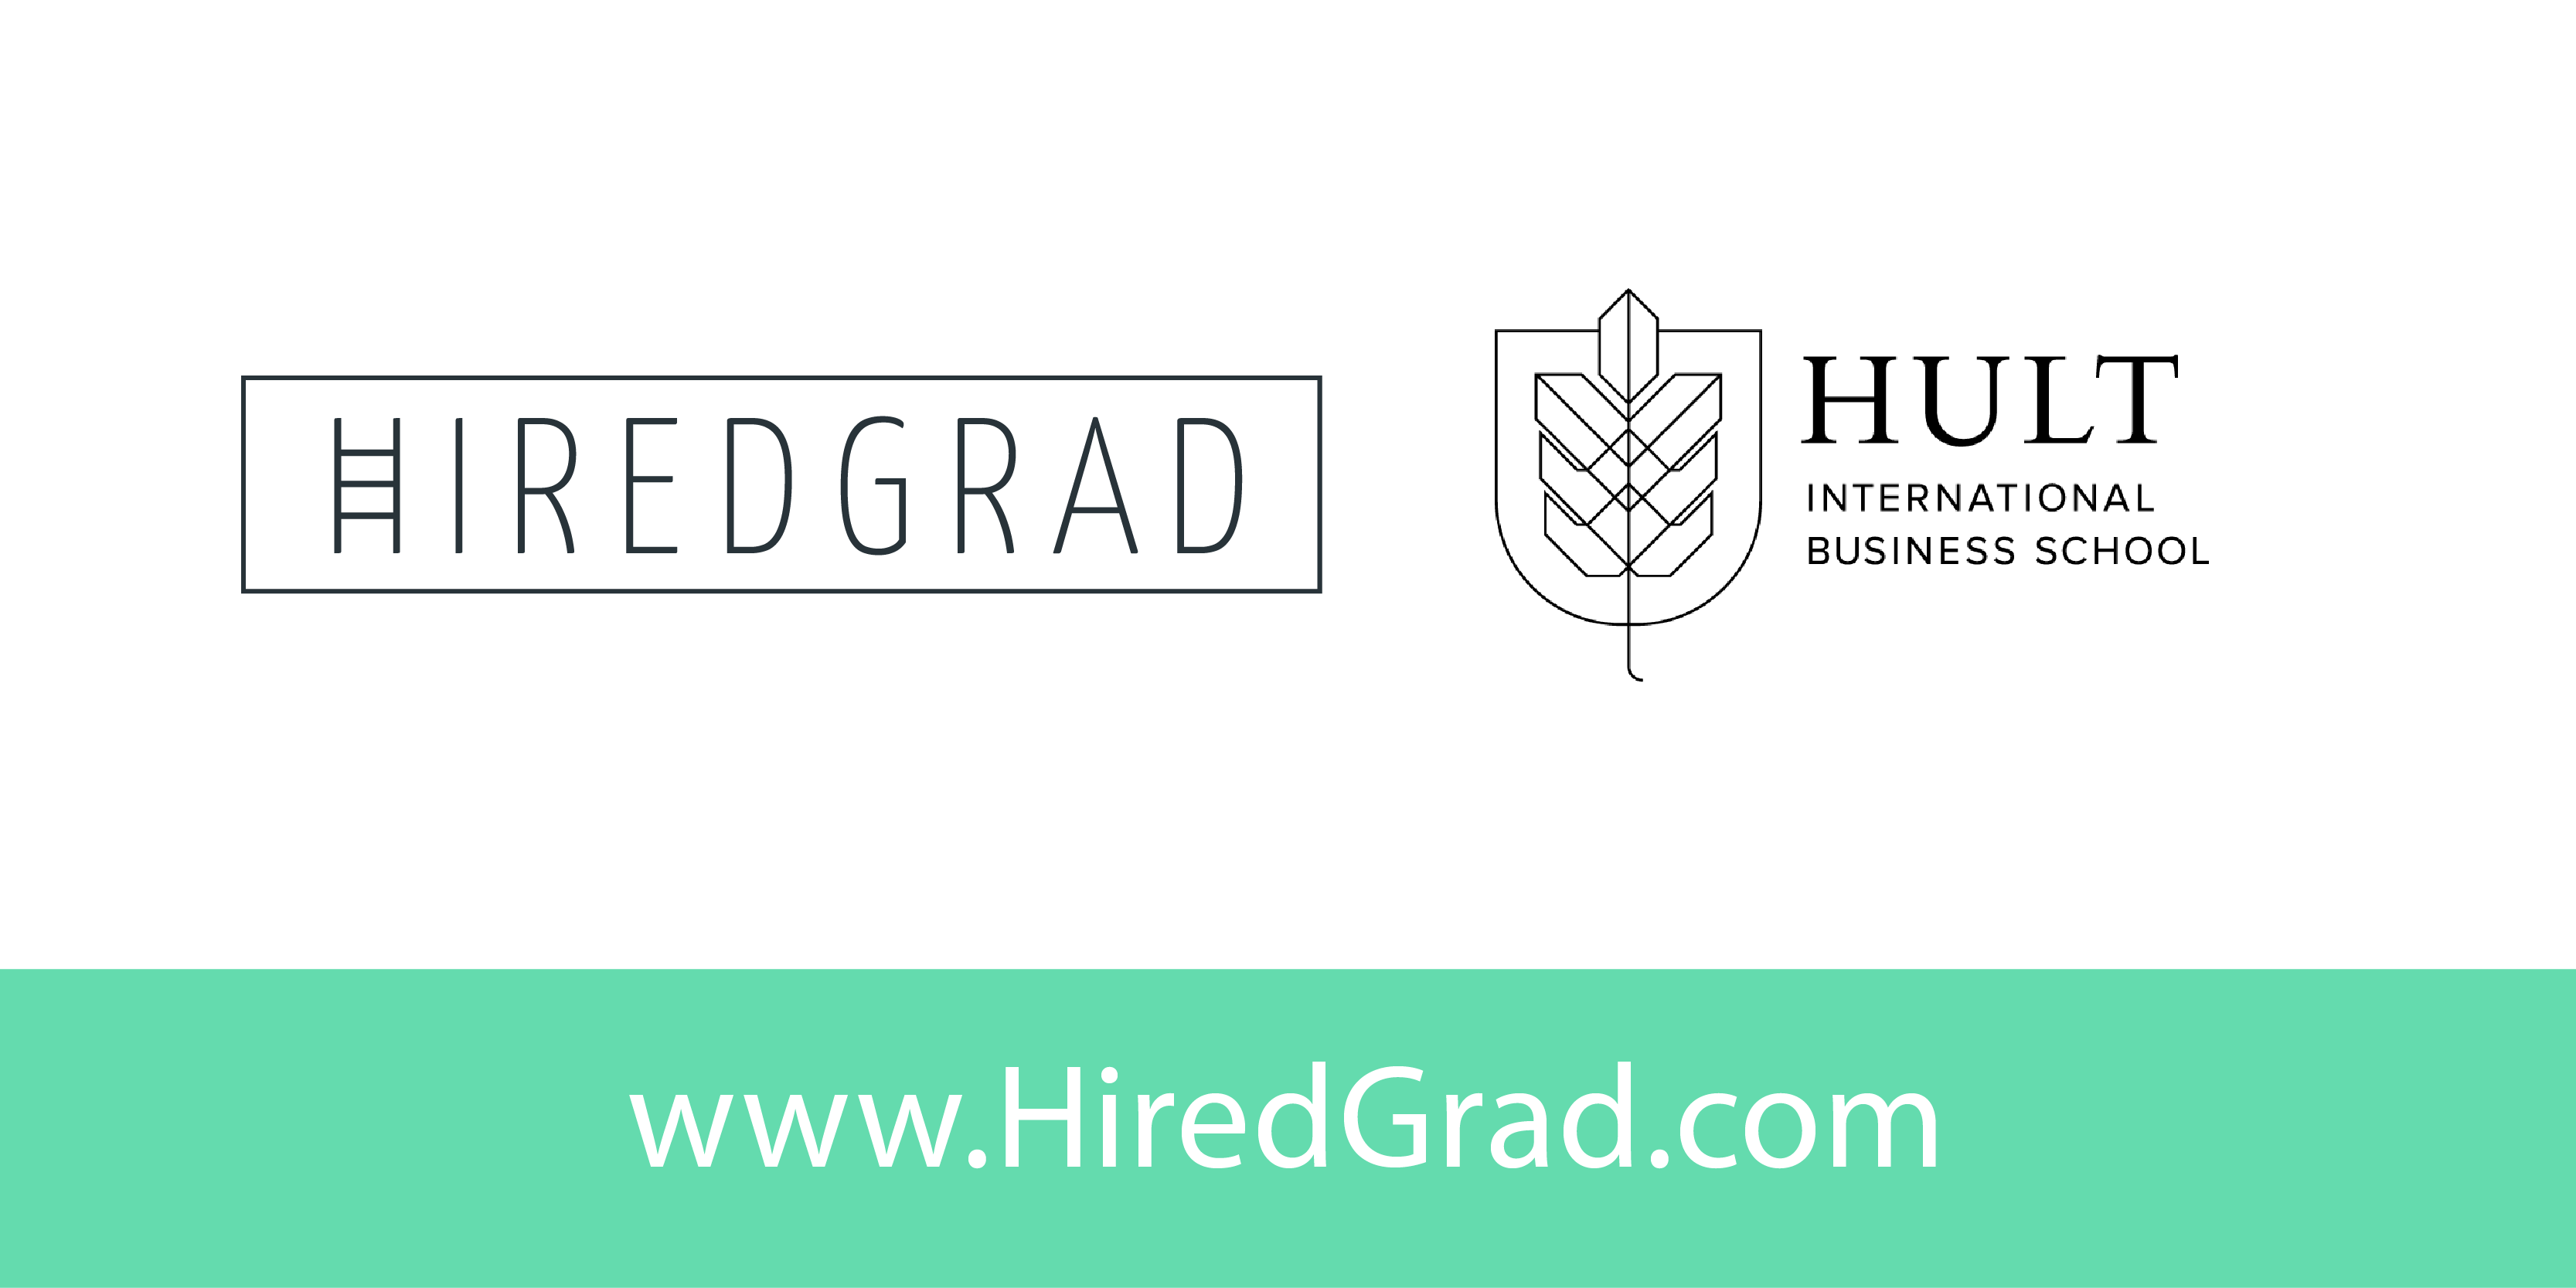 fintech startup jobs and networking hult business school the event will take place on the 1st of from 6pm to 8pm at hult house east undergraduate campus 35 commercial road london e1 1ld room 1